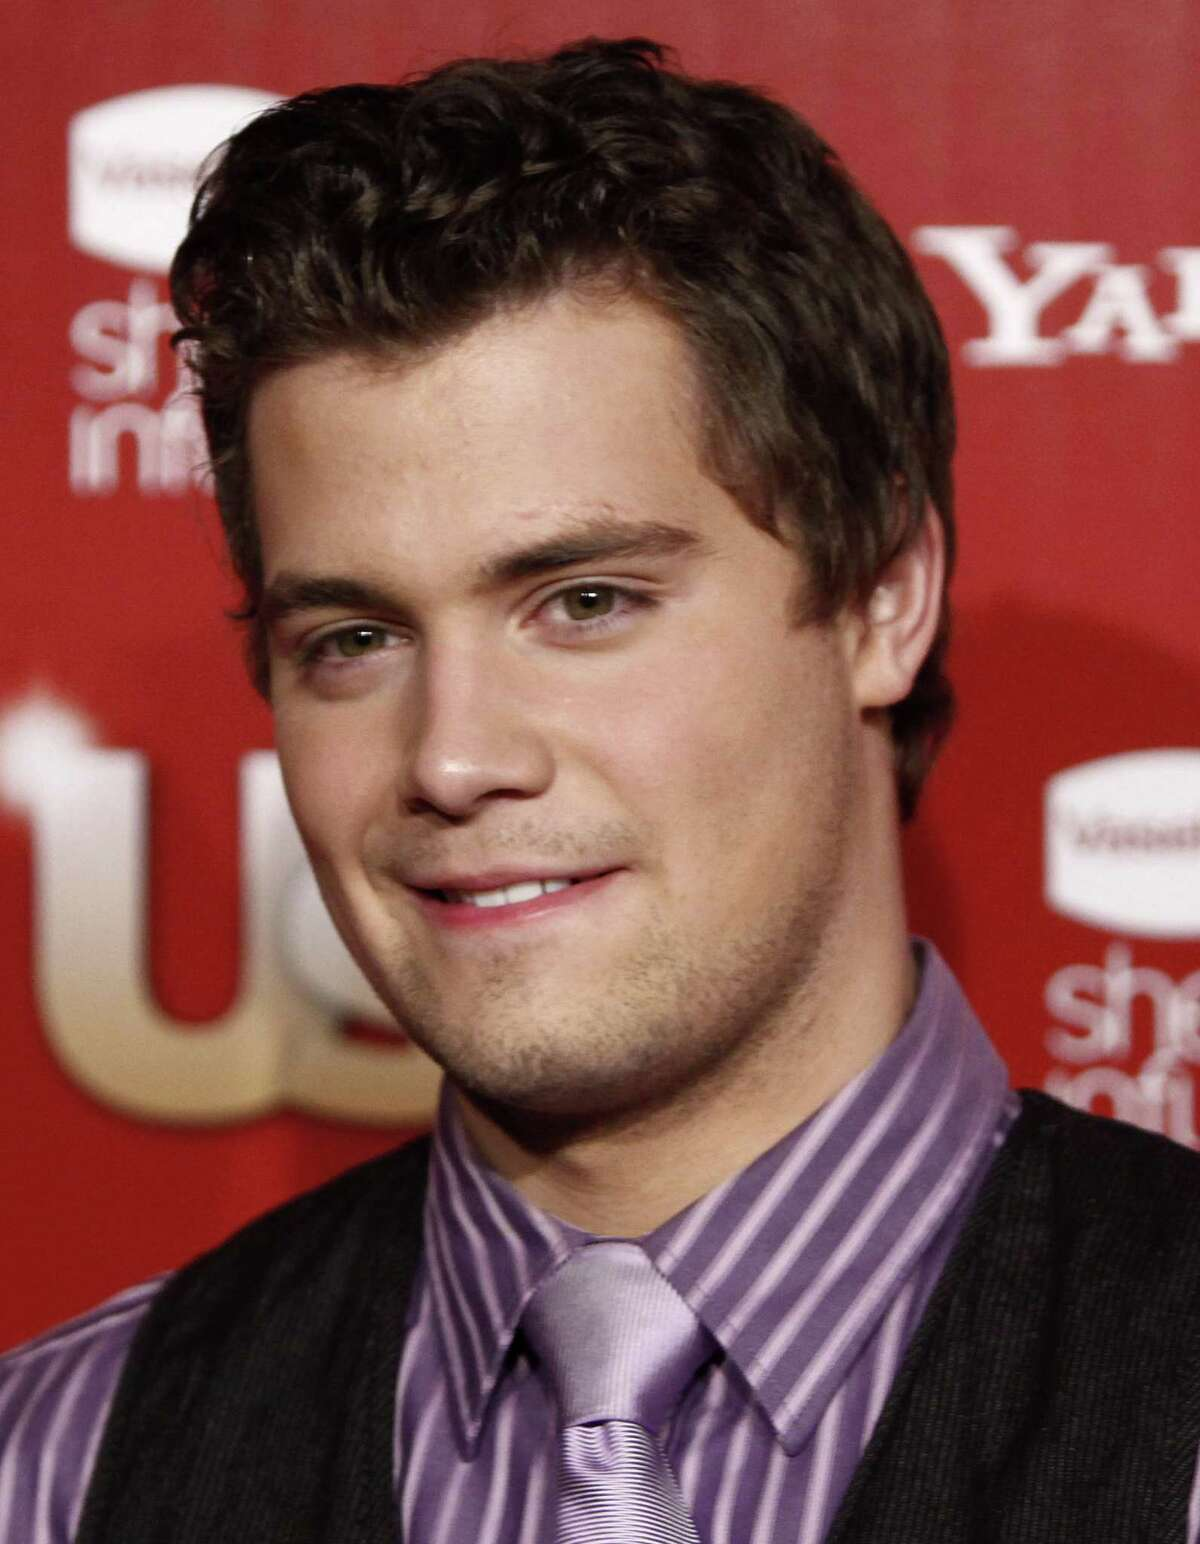 FILE - In this Nov. 19, 2009 file photo, Levi Johnston arrives at US Weekly's Hot Hollywood party in West Hollywood, Calif. (AP Photo/Matt Sayles, file)